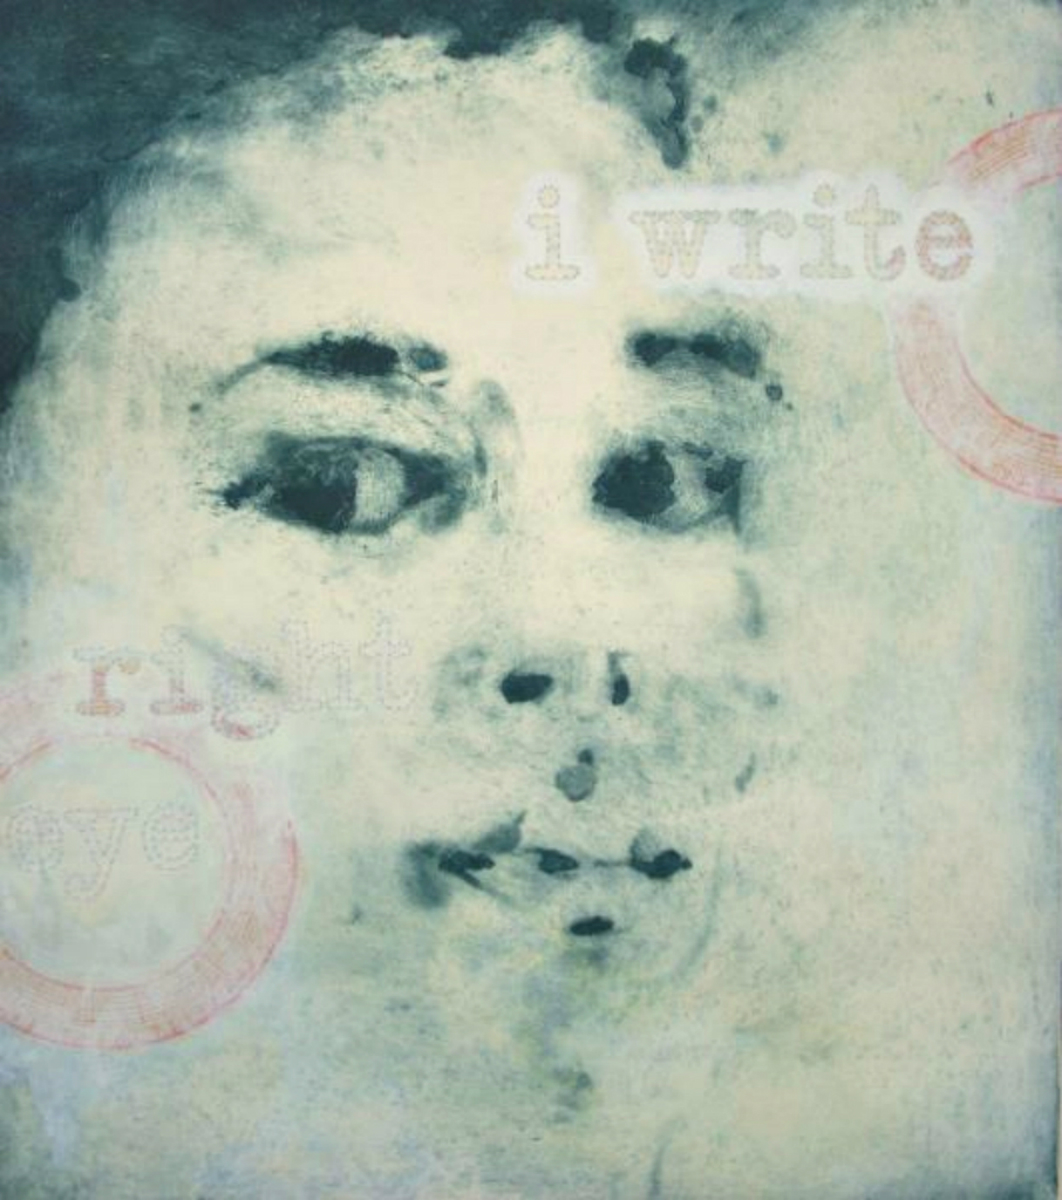 "I Write, Right Eye,  2011, mixed media on intaglio print on fabriano paper, 24 x 18"", Collection of John and Nikki Dinh, San Francisco, CA"